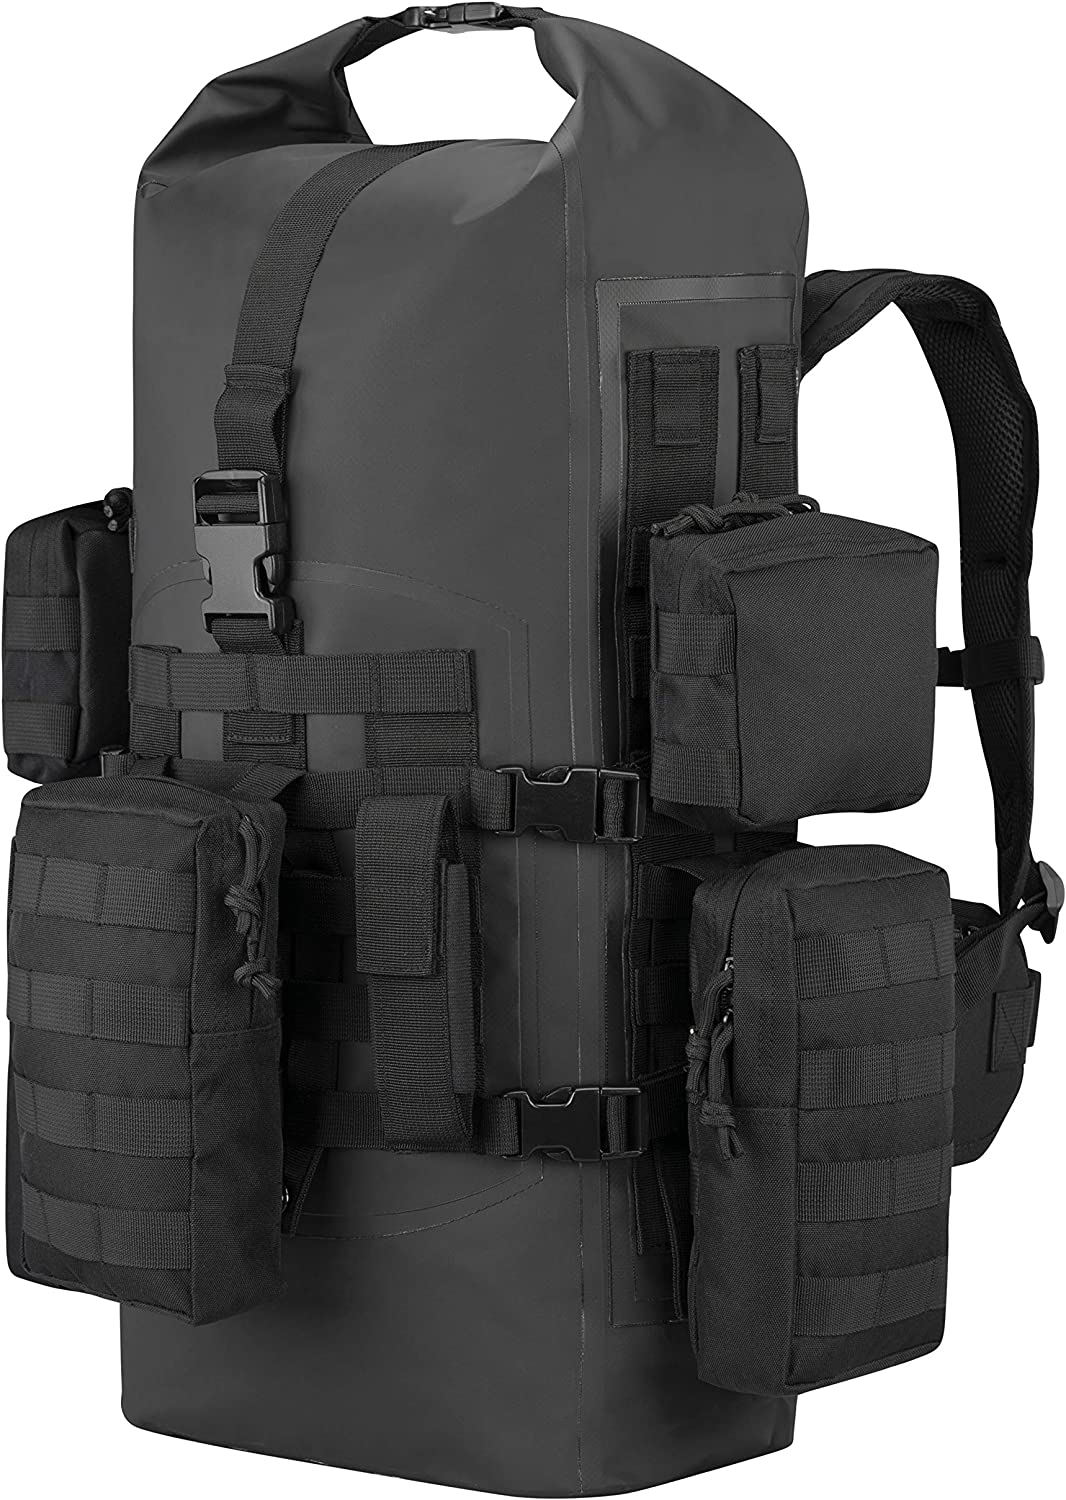 STEALTH 40L Bugout Disaster Survival Backpack - Tactical Waterproof Dry Bag For The Wilderness, Emergencies, Camping, Hiking and Backpacking